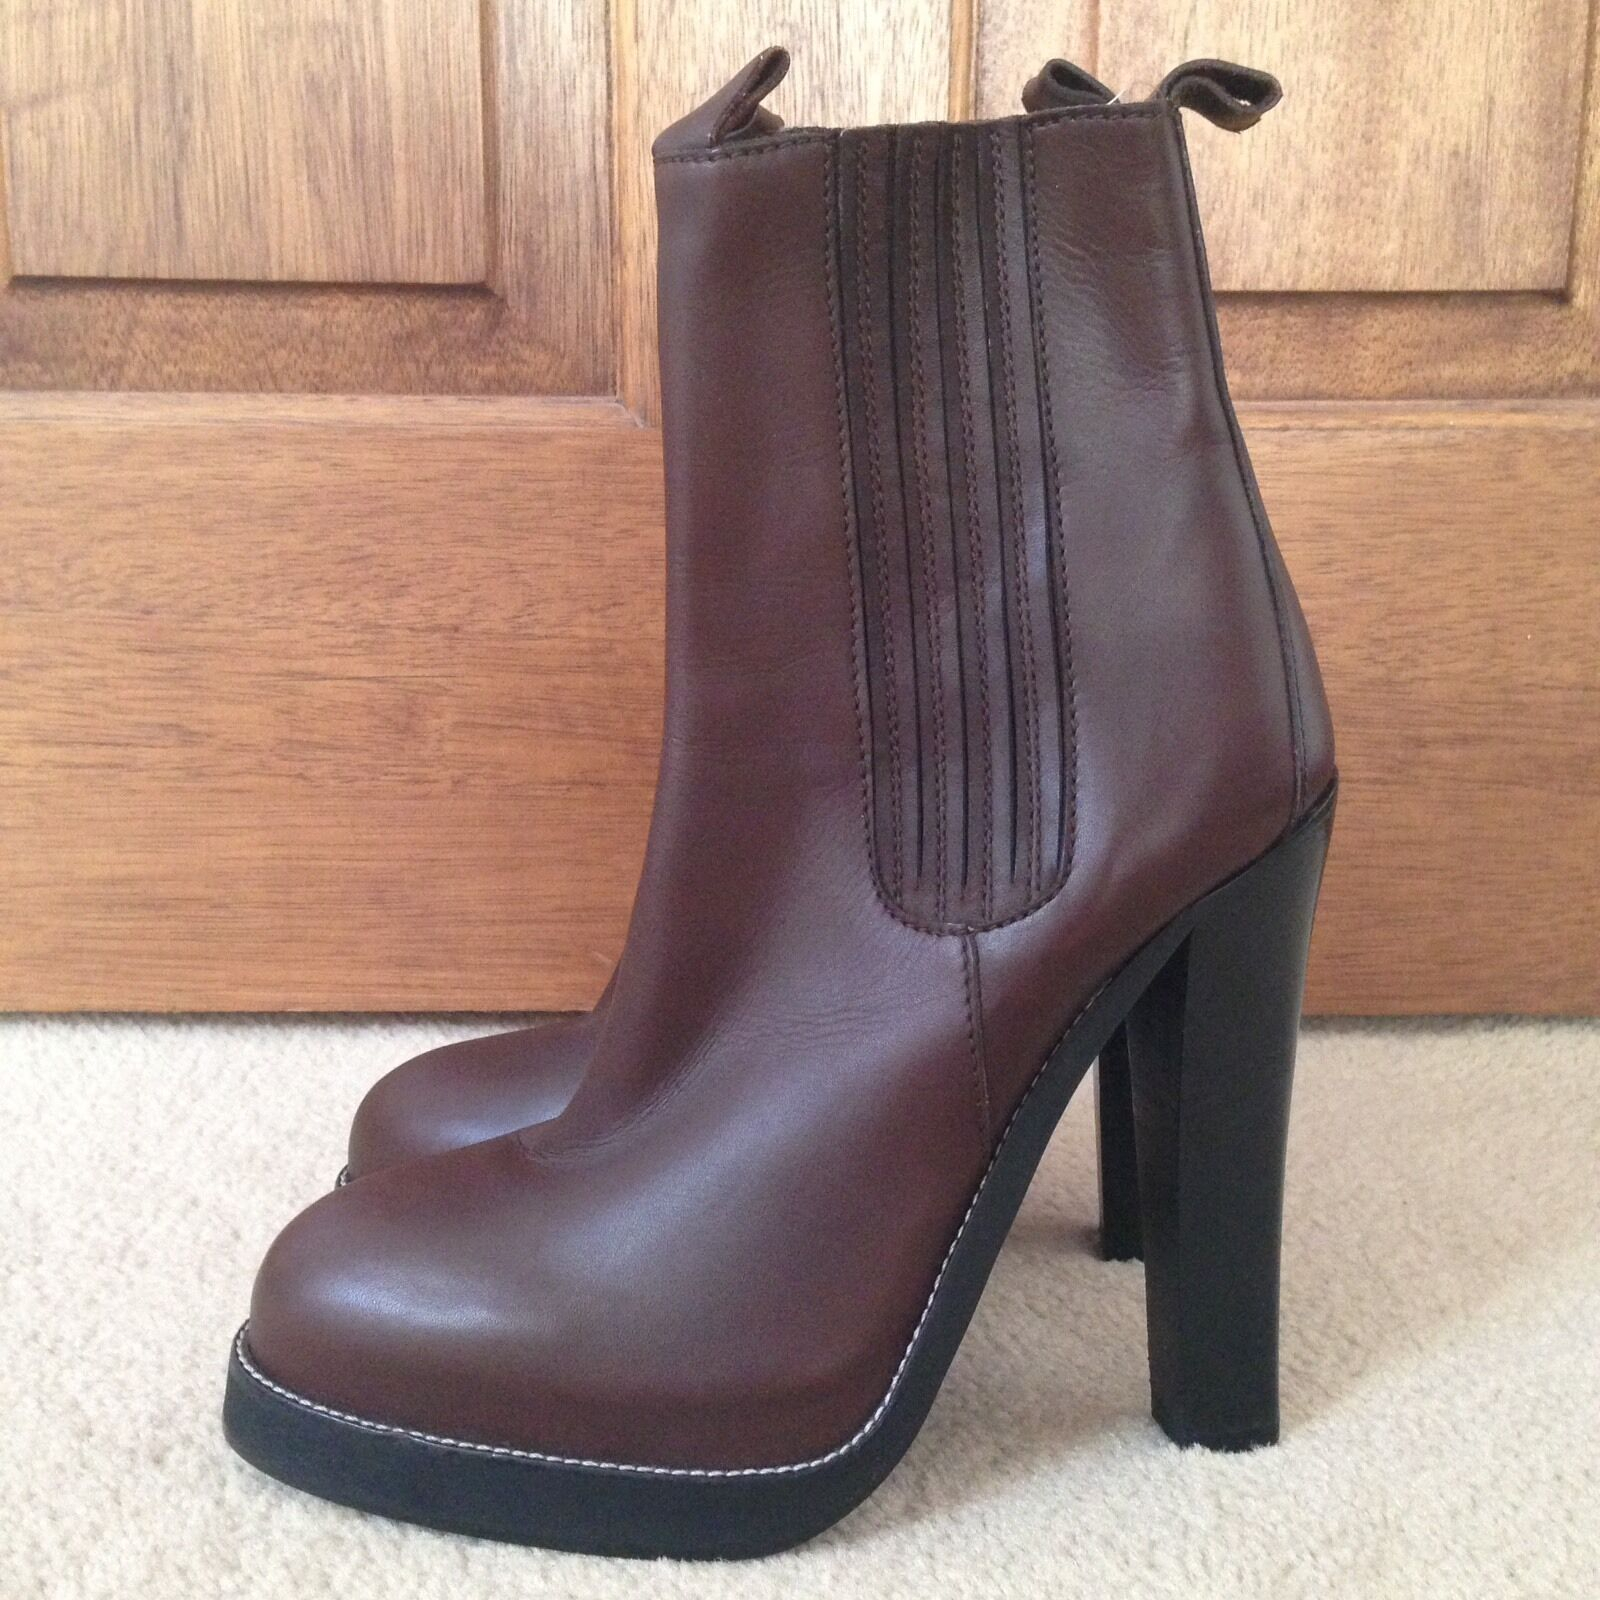 Balenciaga Boots Size 39 Brand New ***REDUCED***